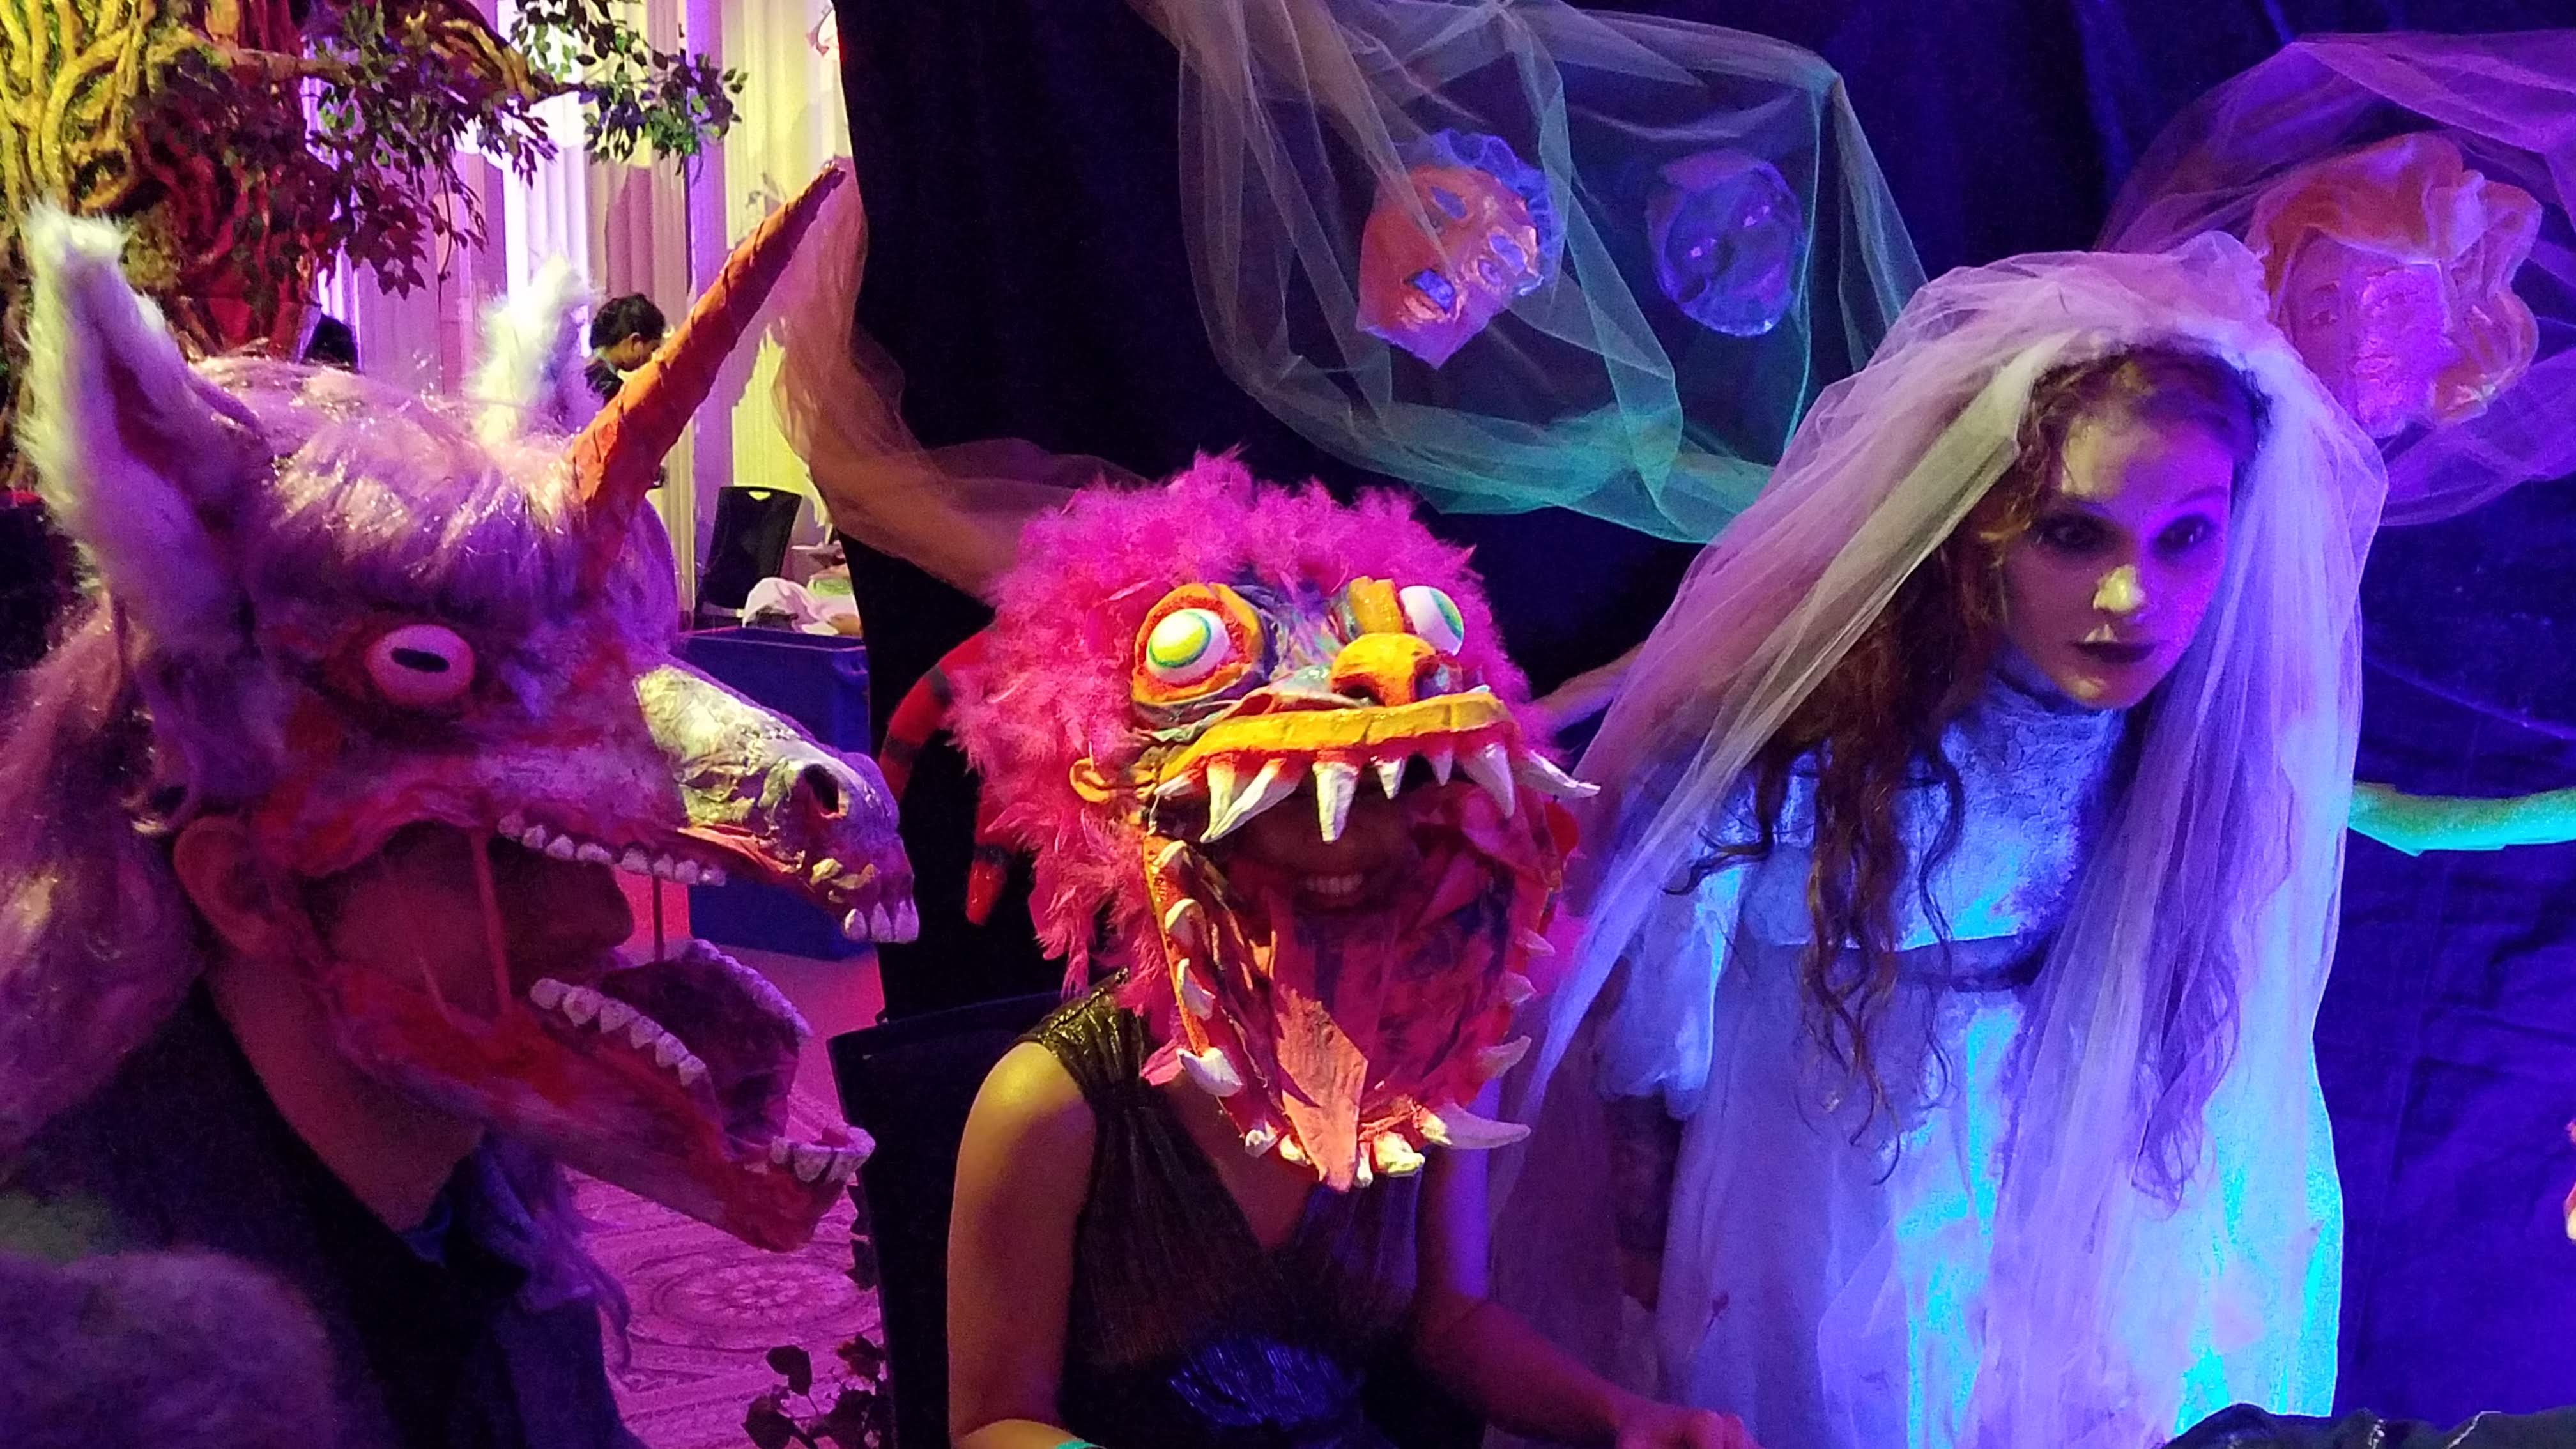 Halloween celebrants in masks at the 45th Northwest Filmmaker's Kickoff party: Portland Museum of Art.